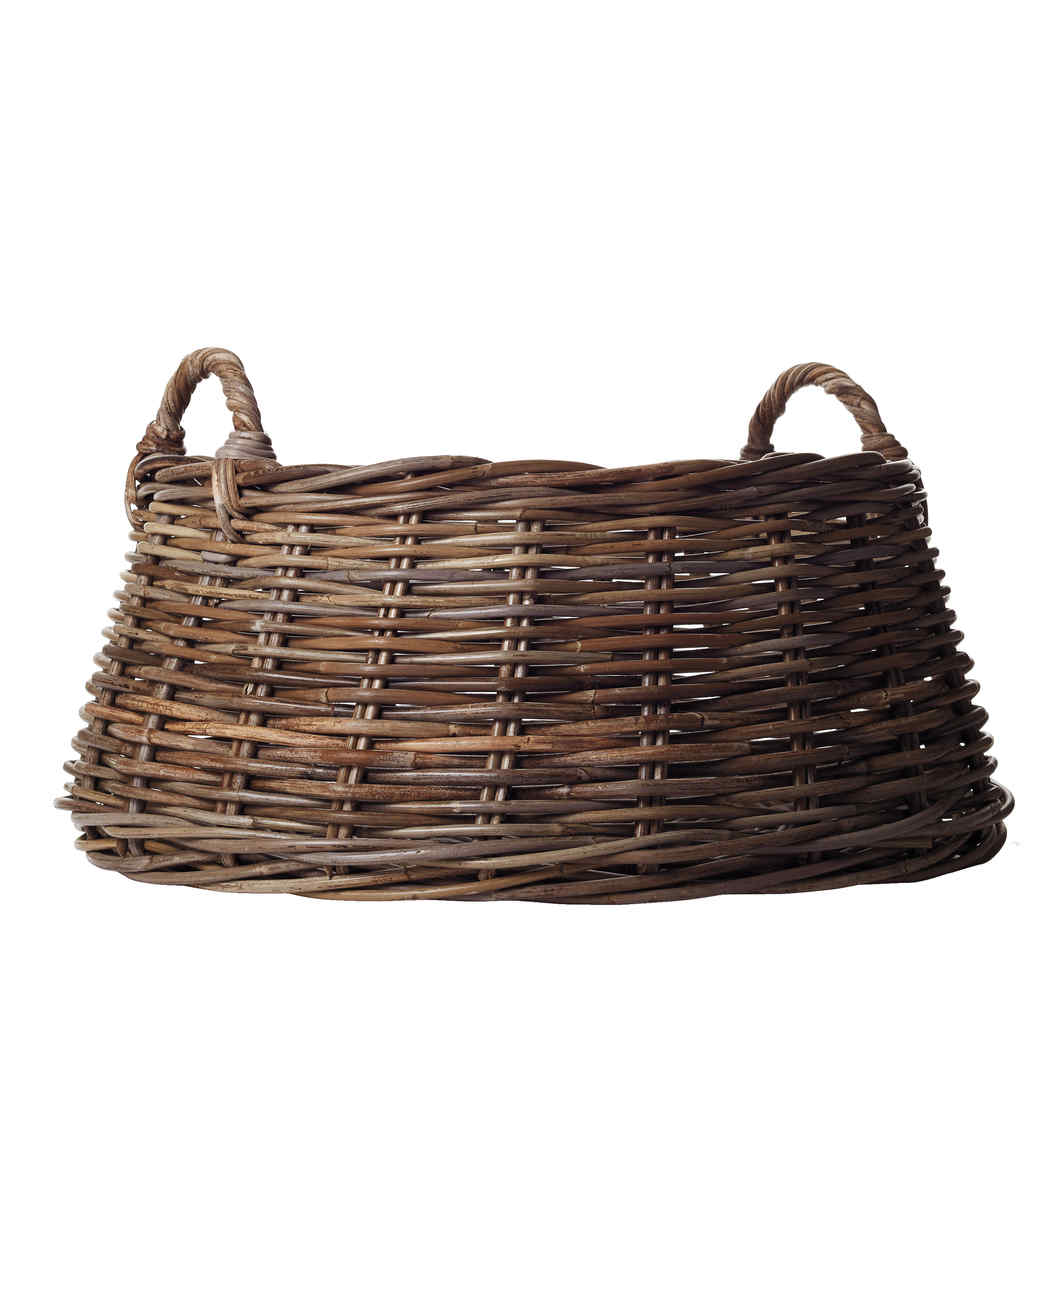 large-wood-basket-woven-288-d111535.jpg